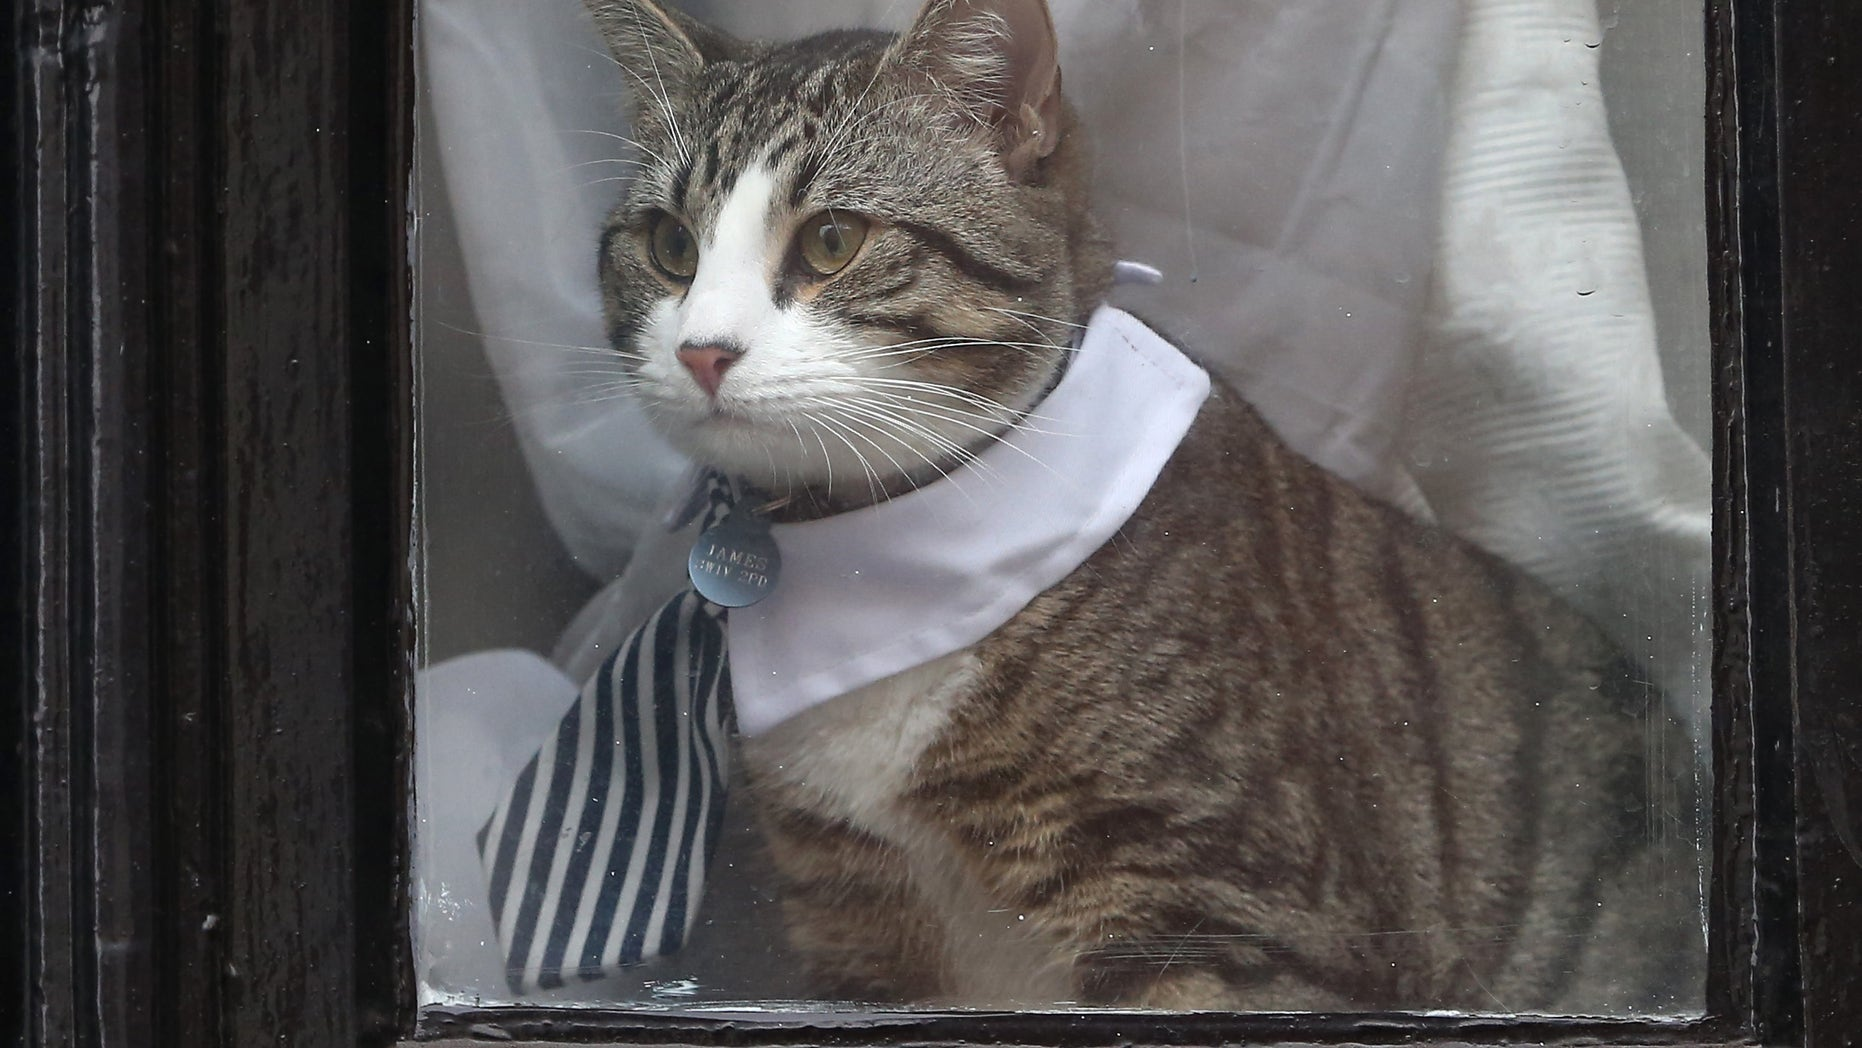 Julian Assange's cat sits in the window of Ecuador's embassy in London on Tuesday.